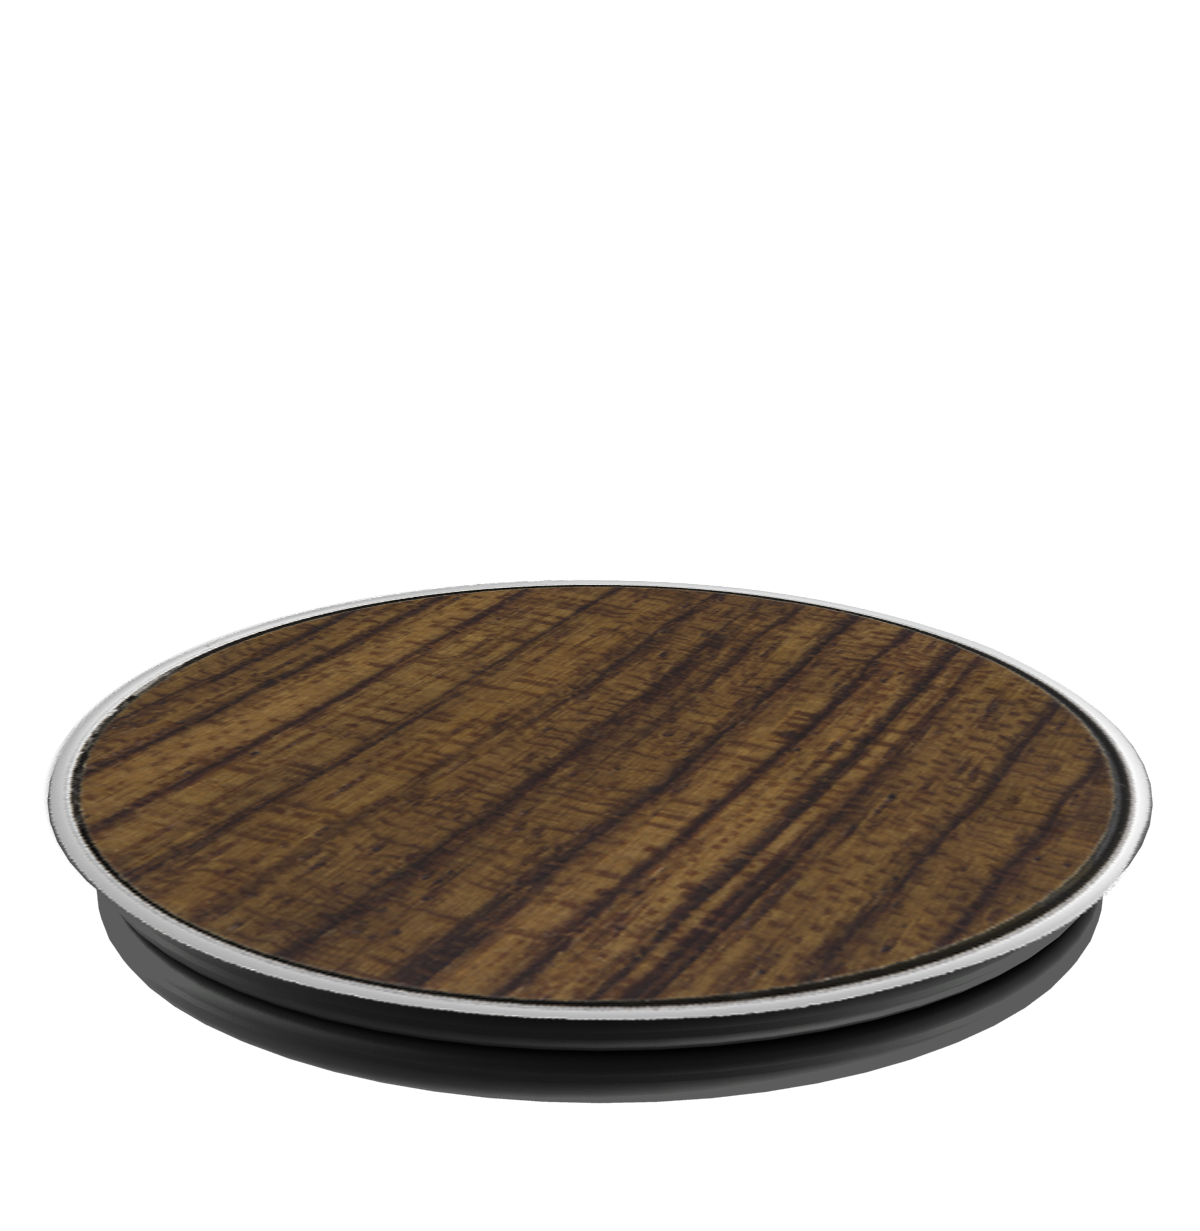 PopSockets Grip Classic Rosewood (Made From Real Wood)